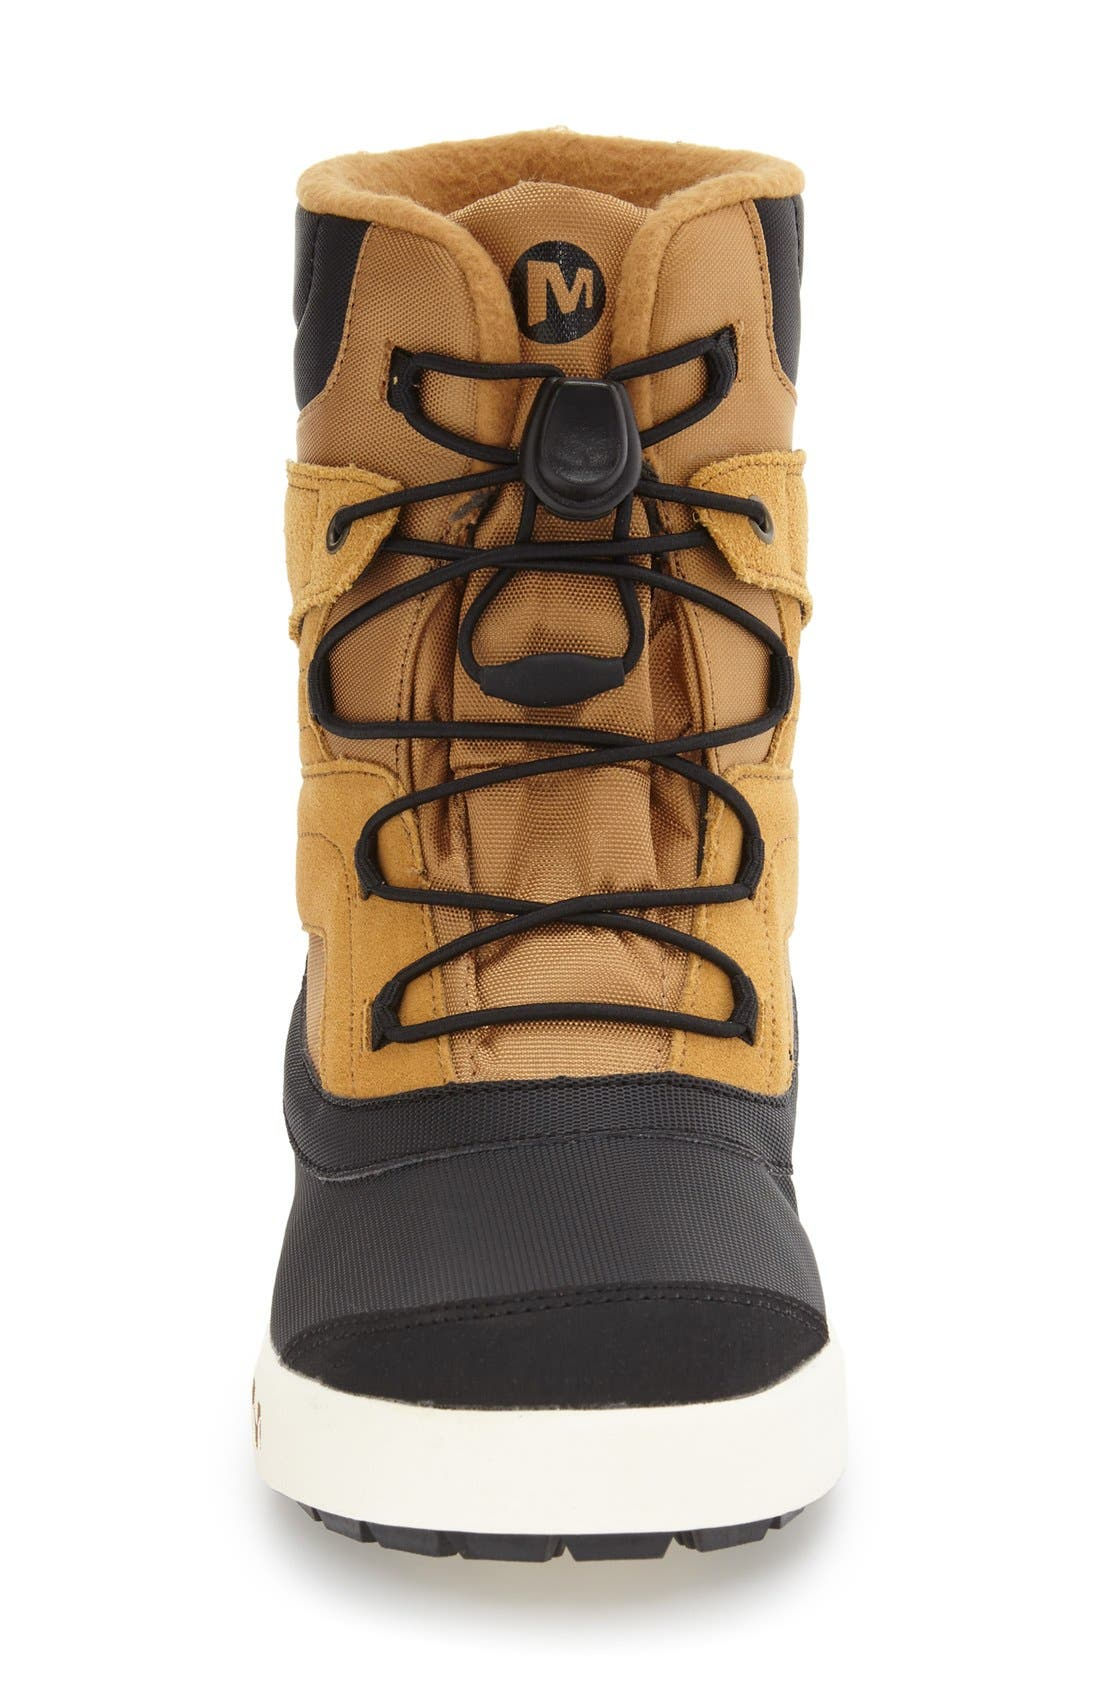 'Snow Bank 2' Waterproof Boot,                             Alternate thumbnail 3, color,                             Wheat/ Black Leather